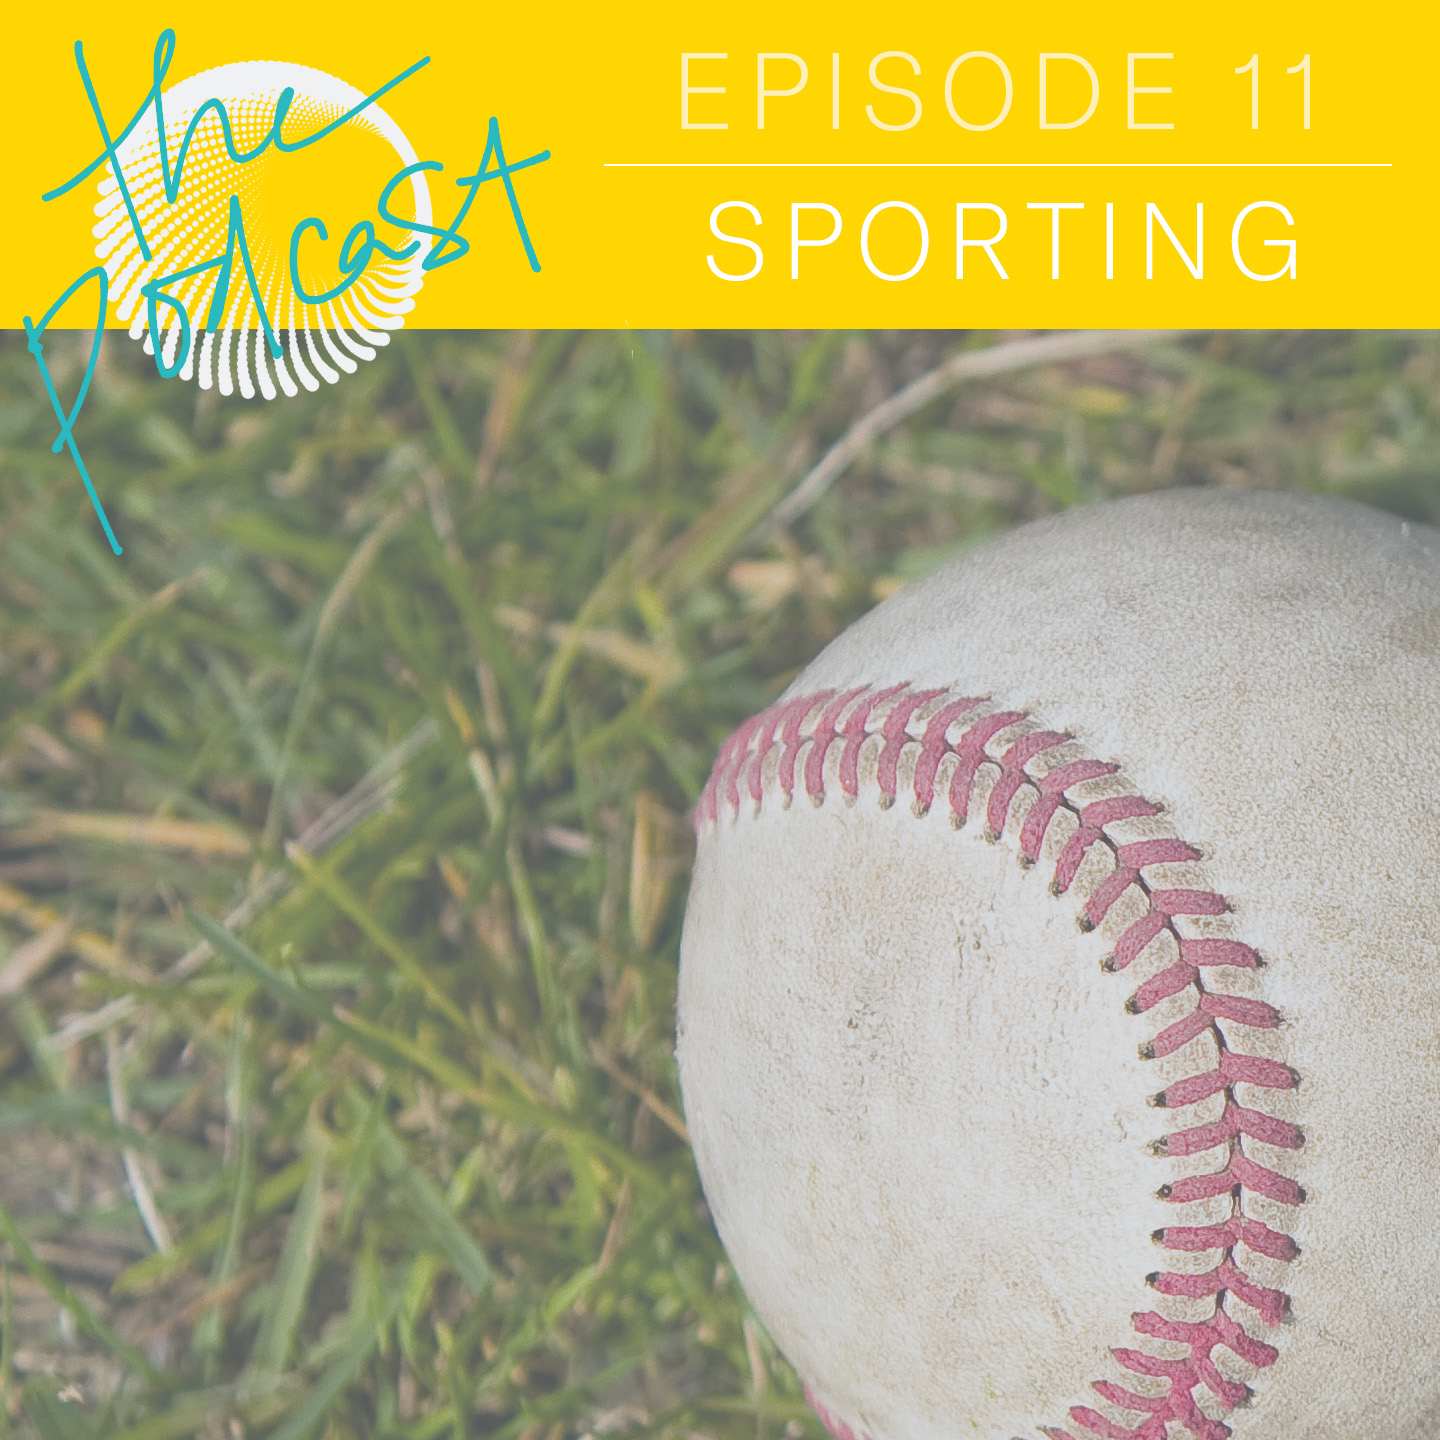 Episode 1.11: Sport   WINNING AND FORMATIVE GOODNESS  Tim and Tuesday deconstruct the change journey of a piece of work that rings bells across the spectrum. Using sport as a container, what can the rest of us learn about breaking through to 'win'?  For show notes, visit the episode page.  || February 5, 2019